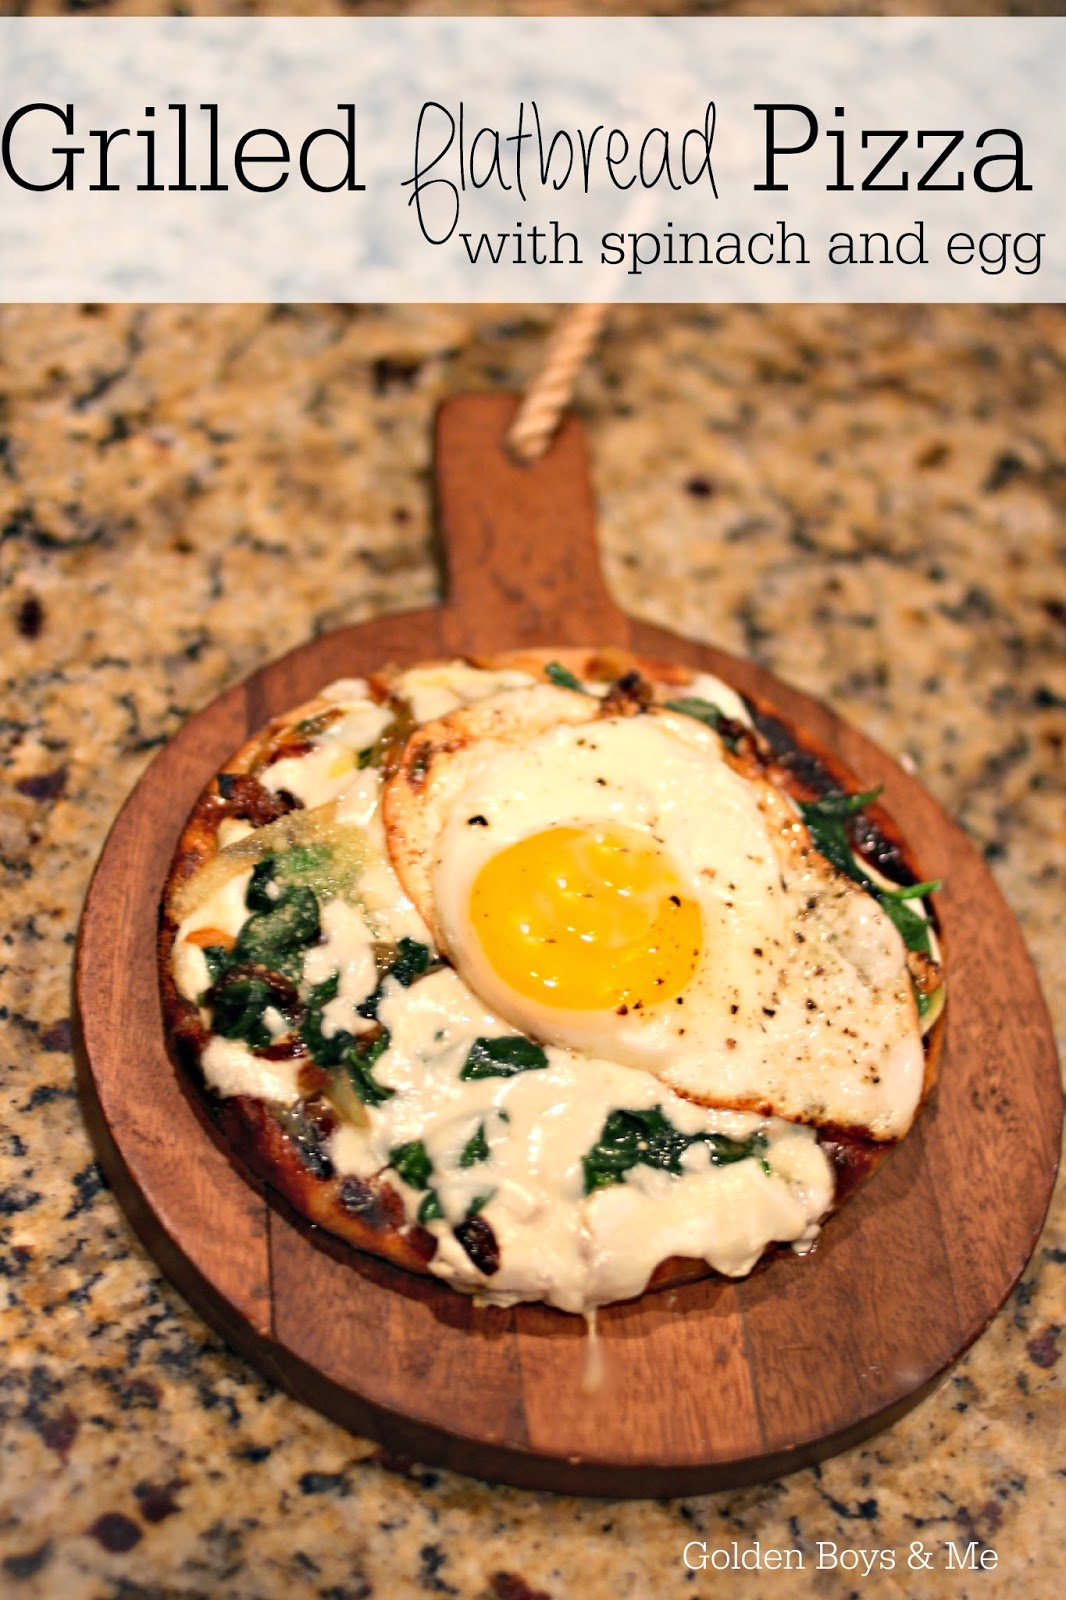 Grilled Flatbread Pizzas with spinach and egg-www.goldenboysandme.com